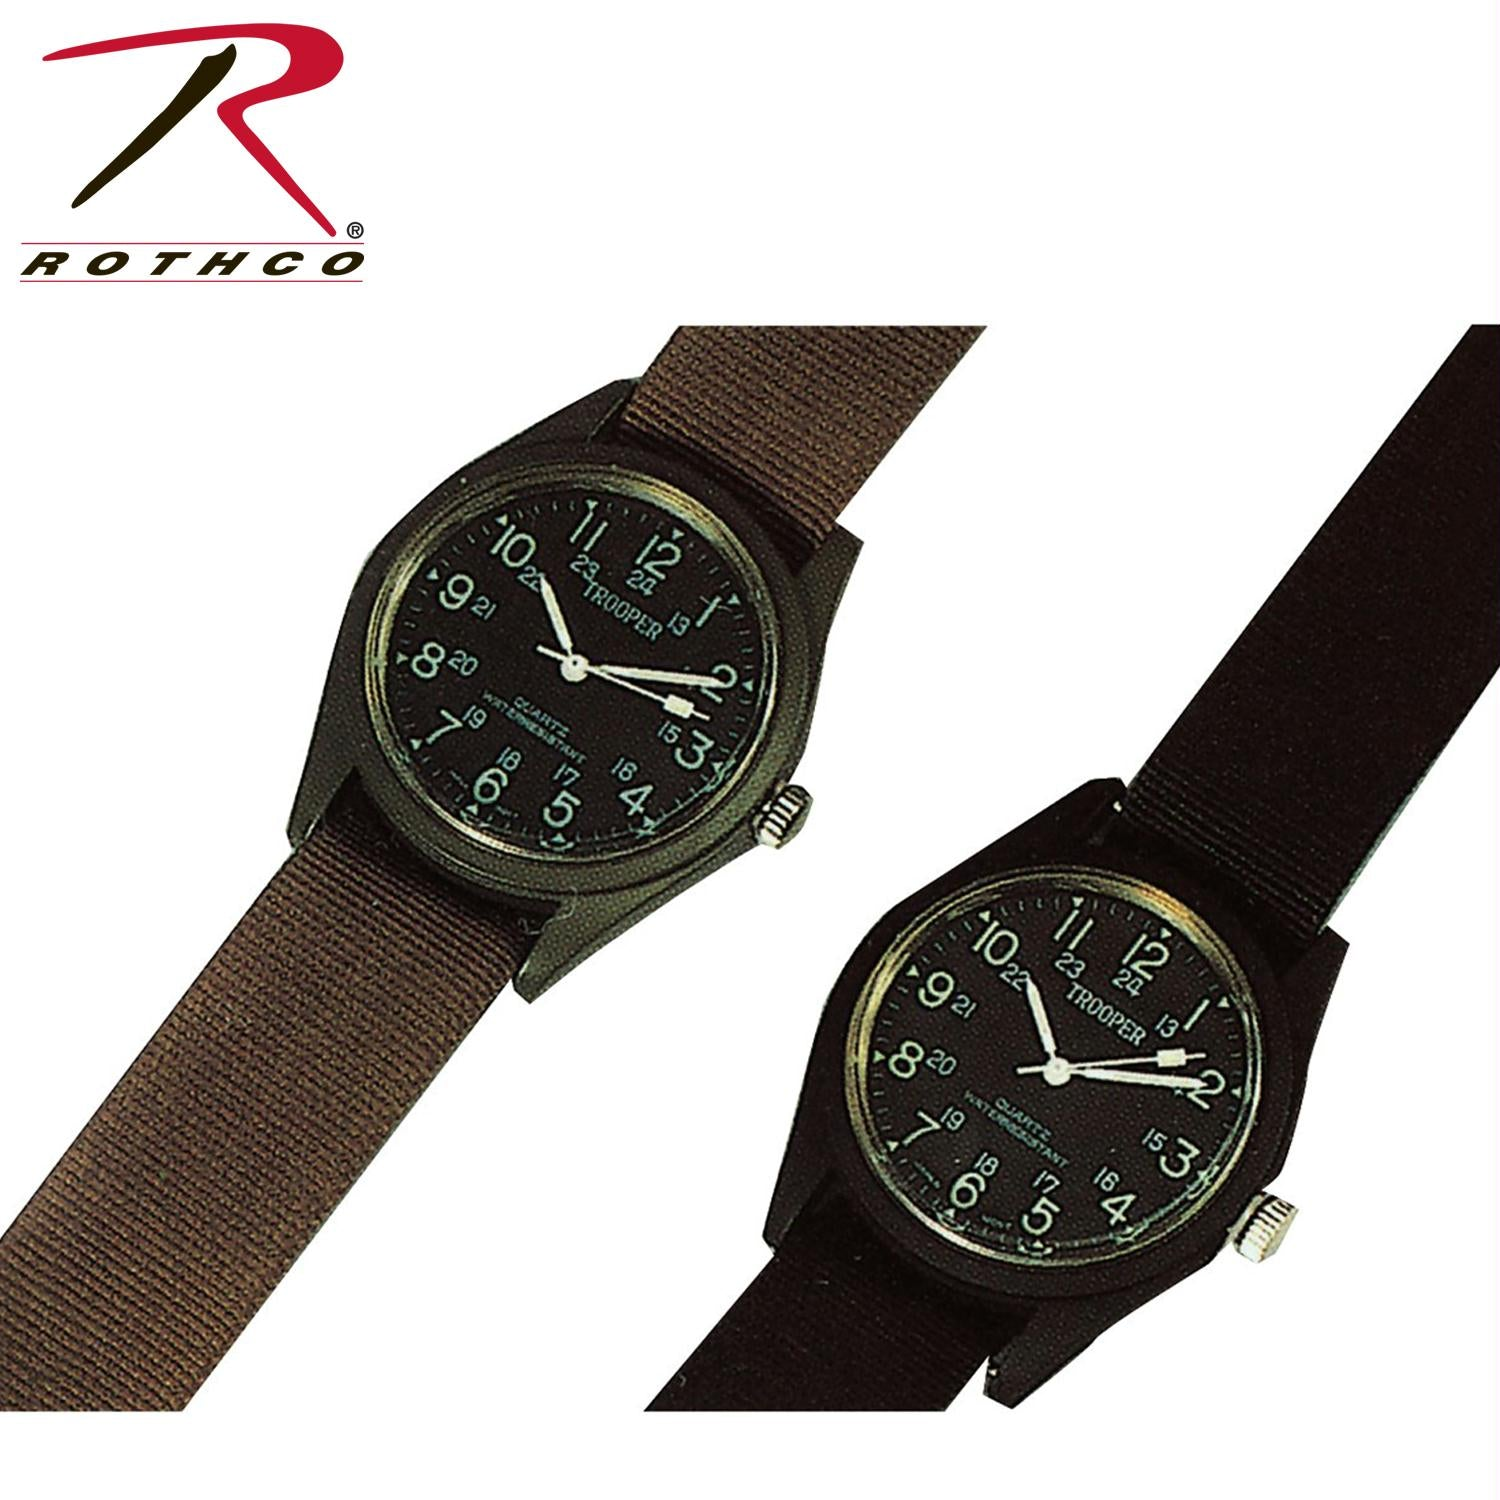 Rothco Field Watch - Olive Drab